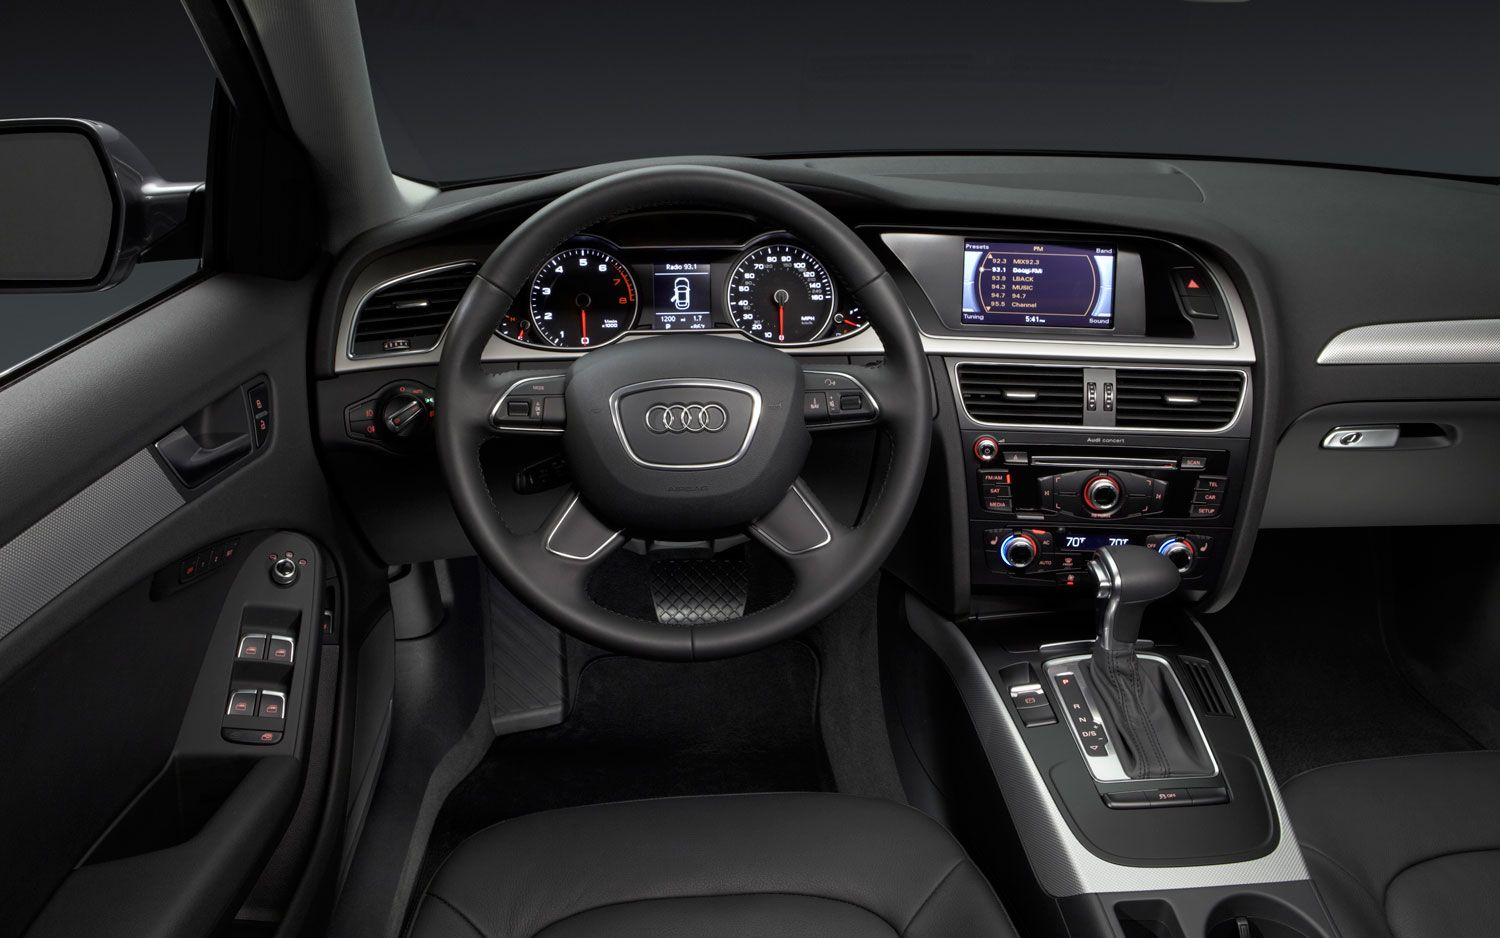 2015 Audi A4 Sedan Next Gen : Review Cars 2015 | My Dream Cars ...  Audi S Black With Camel Interior on 2010 audi s3 interior, 2010 bmw m3 gts interior, 2010 saturn astra interior, 2010 buick verano interior, 2010 audi allroad interior, 2009 audi tts interior, 2010 audi a7 interior, audi s7 interior, 2009 audi s6 interior, 2010 porsche cayenne s interior, 2010 hyundai equus interior, 2002 audi s6 interior, 2010 audi a8 l interior, 2010 bmw 650i interior, 2010 chevy express interior, 2010 audi s6 interior, 2010 audi s4, 2010 bmw 328i coupe interior, 2014 audi tt interior, 2010 lexus is350 interior,